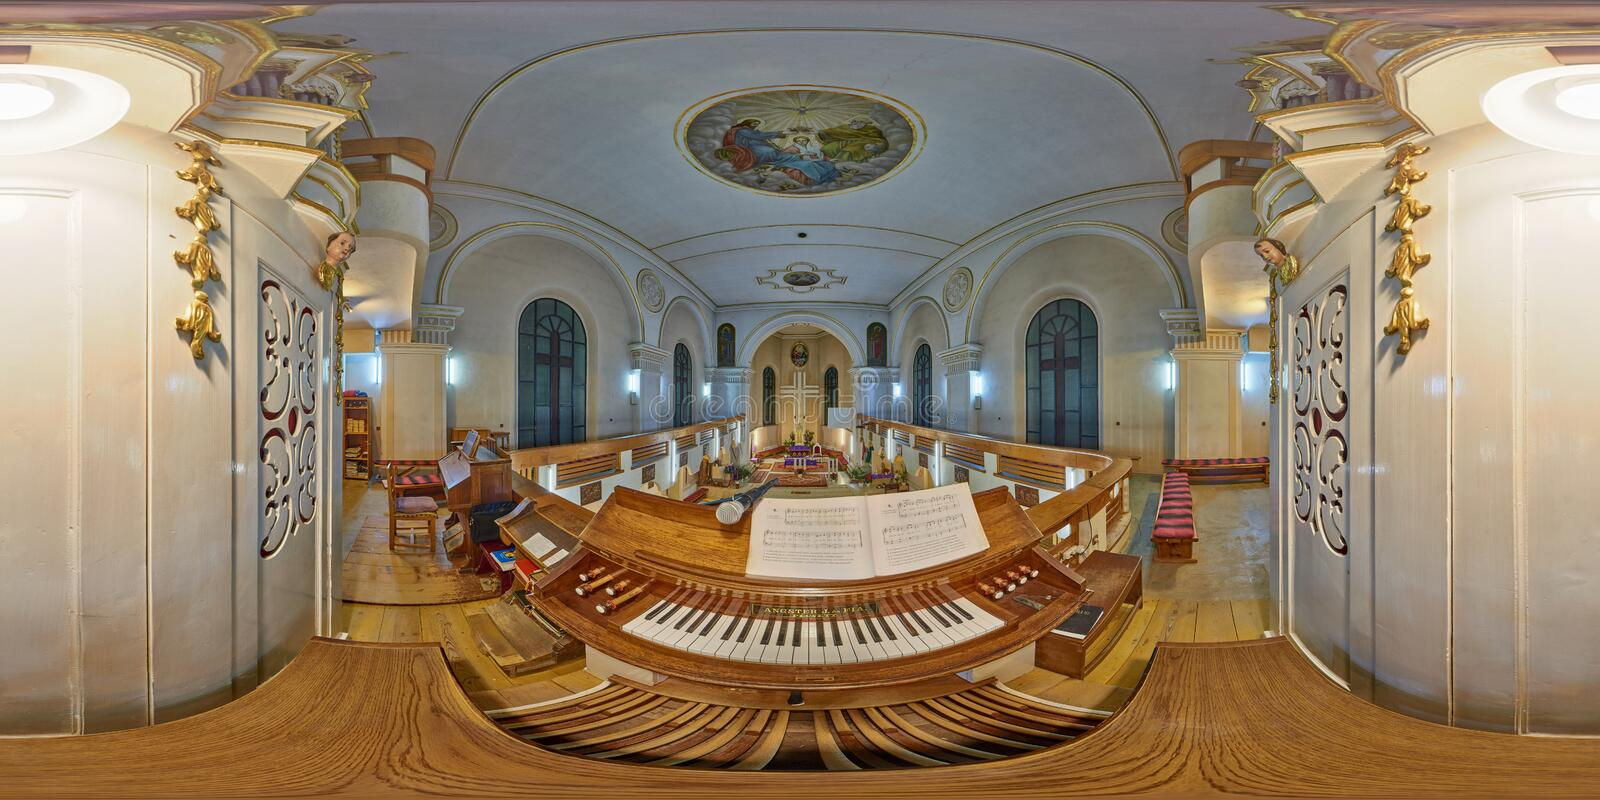 360 inteior panorama from the organist`s point of view in Holy Trinity Catholic Church in Sovata, Romania. Interior spherical panorama shot from organist`s point royalty free stock image